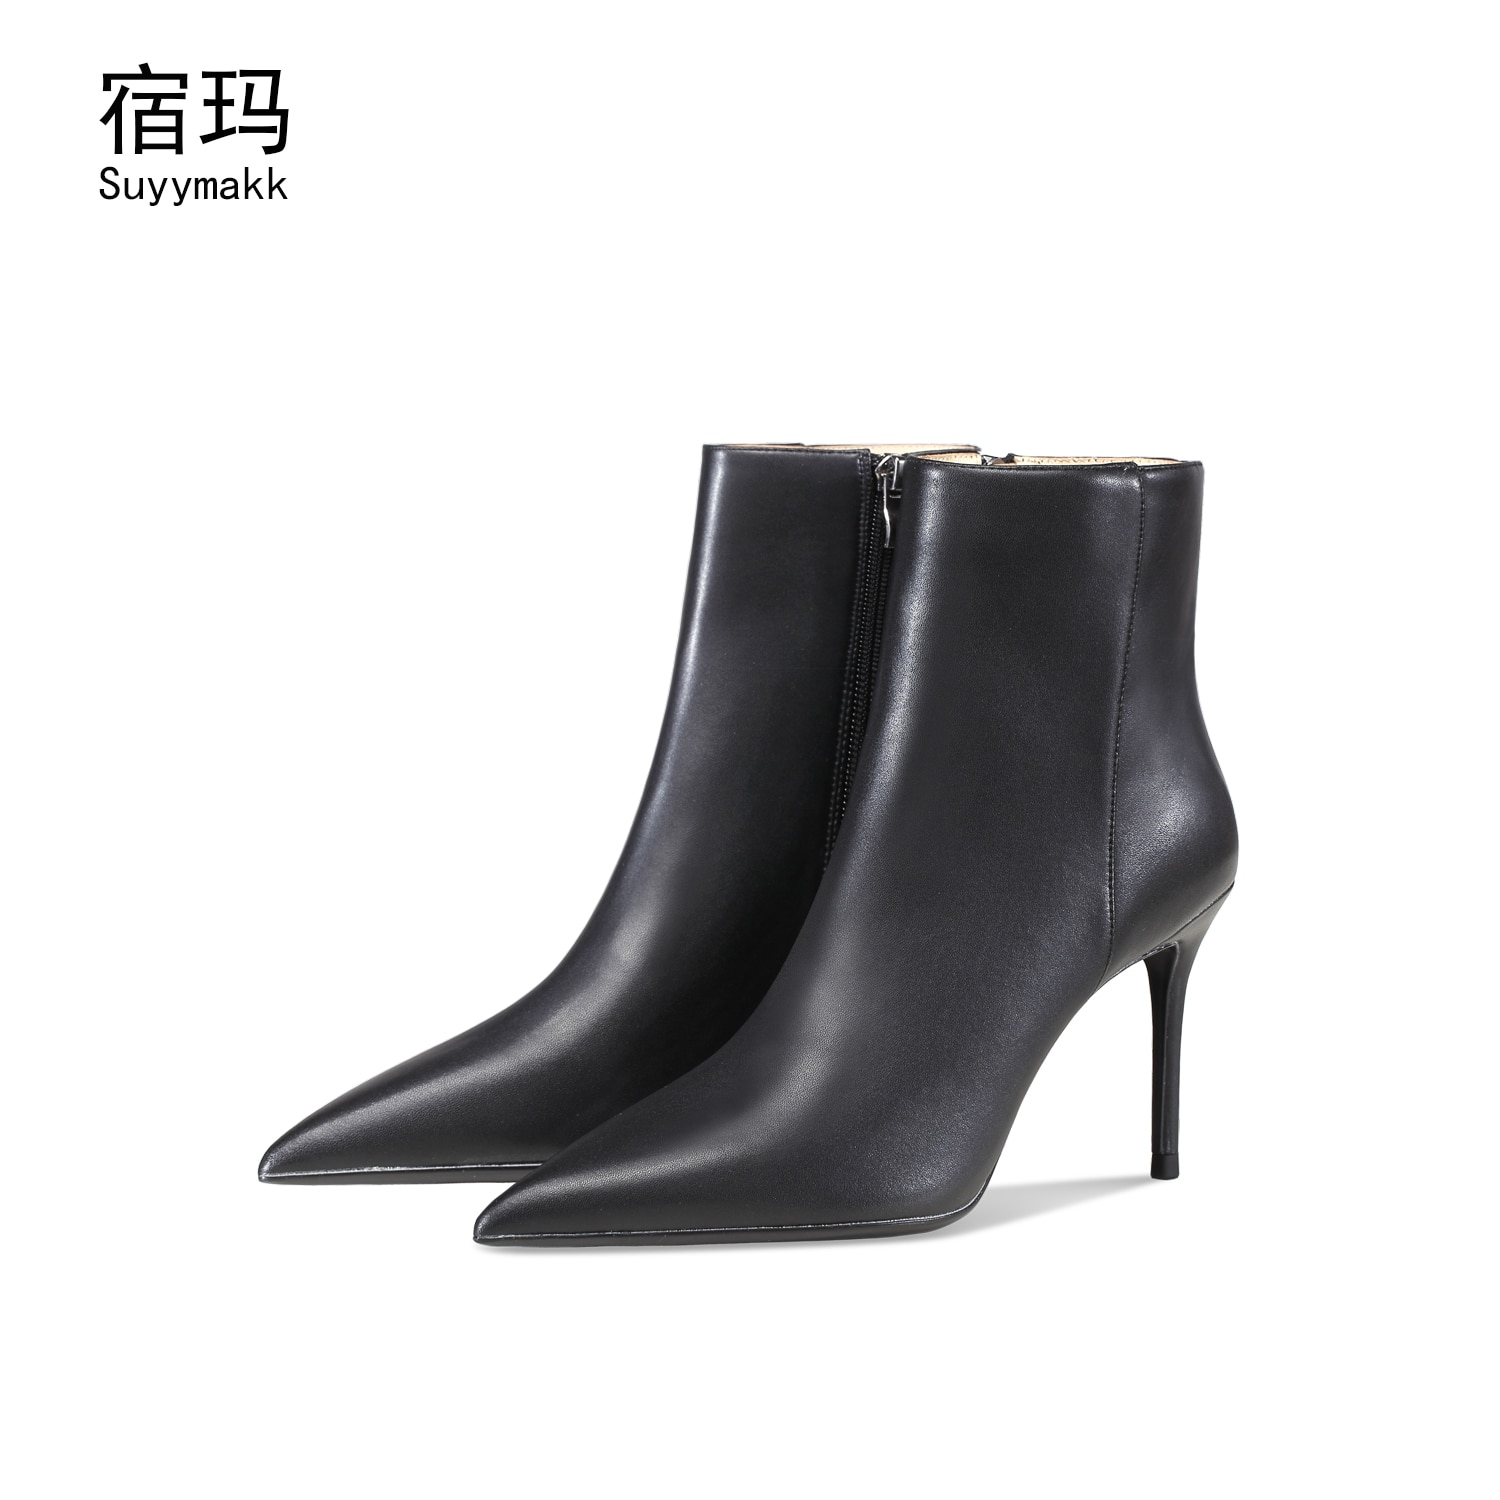 newest winter boots for women print flowers ankle boots pointed toe high heels boots 12 cm sexy stretch boots short dress shoes Boots Female Women Shoes Sexy Pointed Toe High Heels For Woman  Fashion 2021 Autumn Ankle Boots Genuine Leather Short Boots 8cm